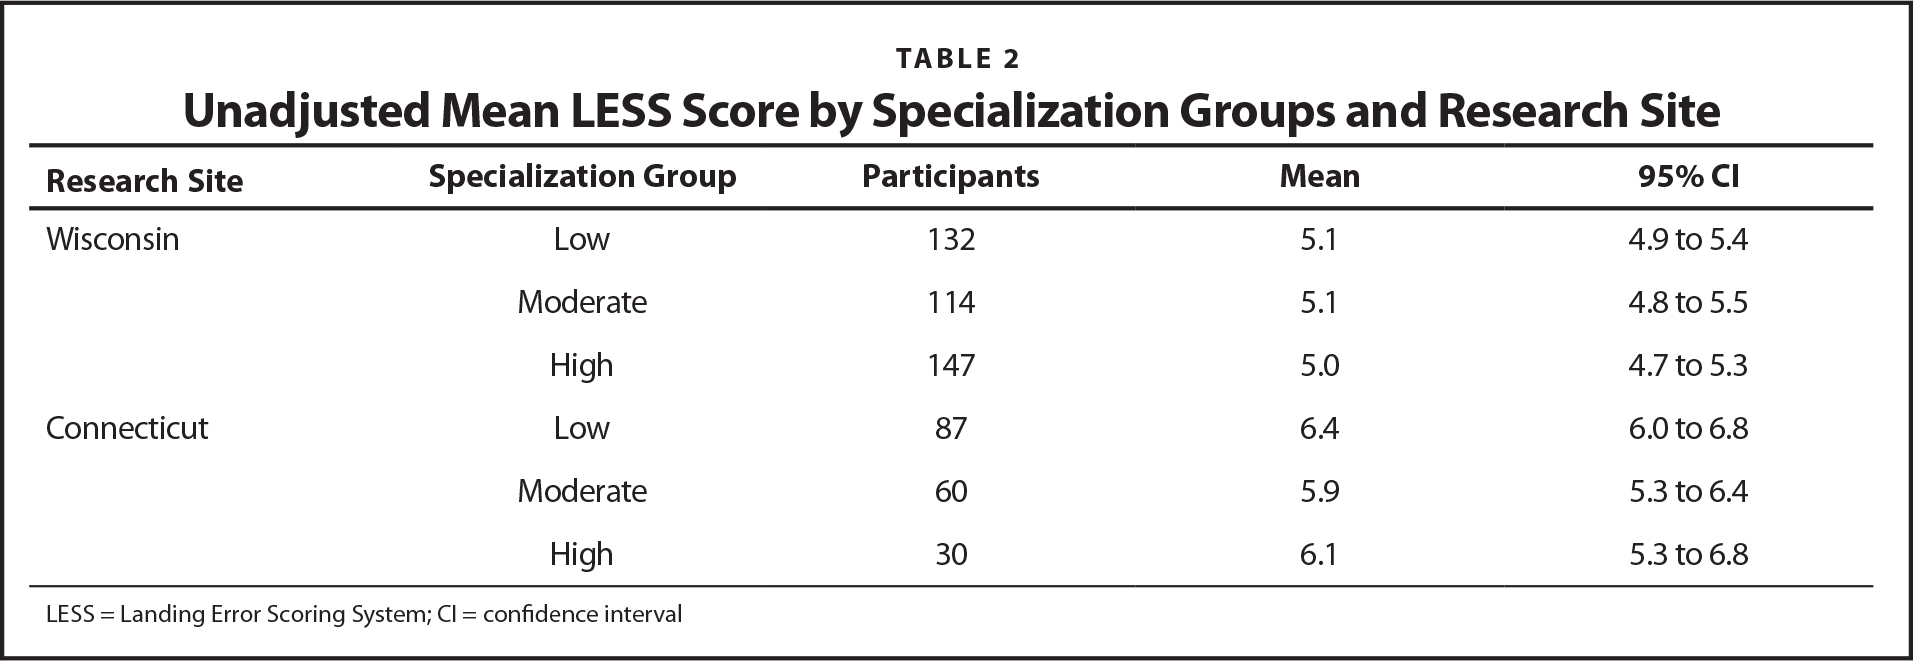 Unadjusted Mean LESS Score by Specialization Groups and Research Site